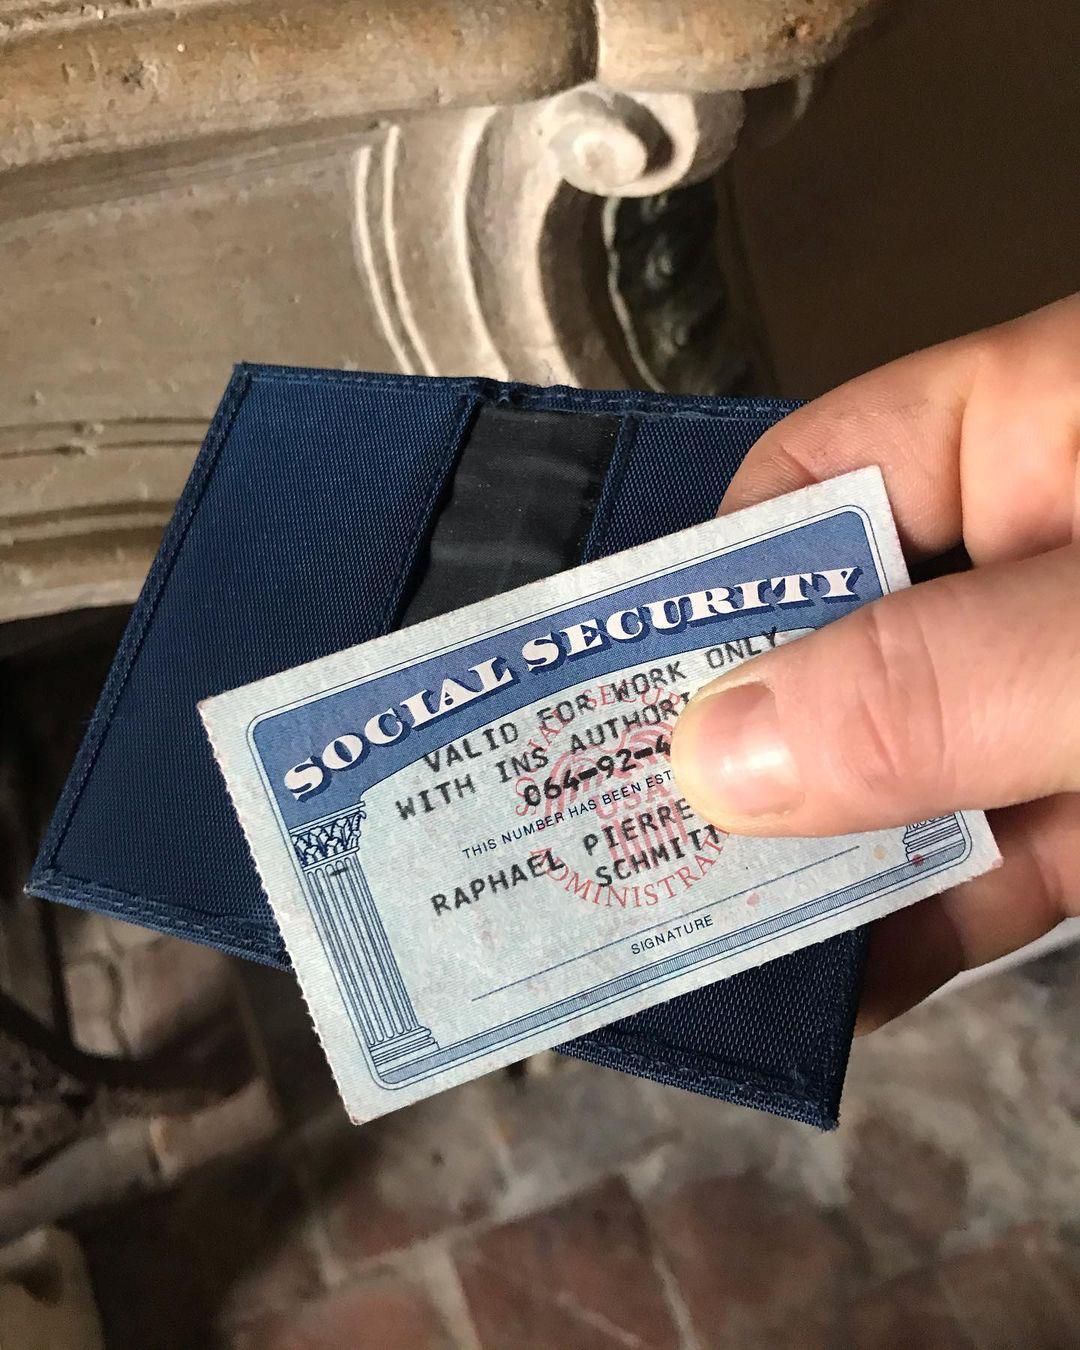 How to get a social security card online